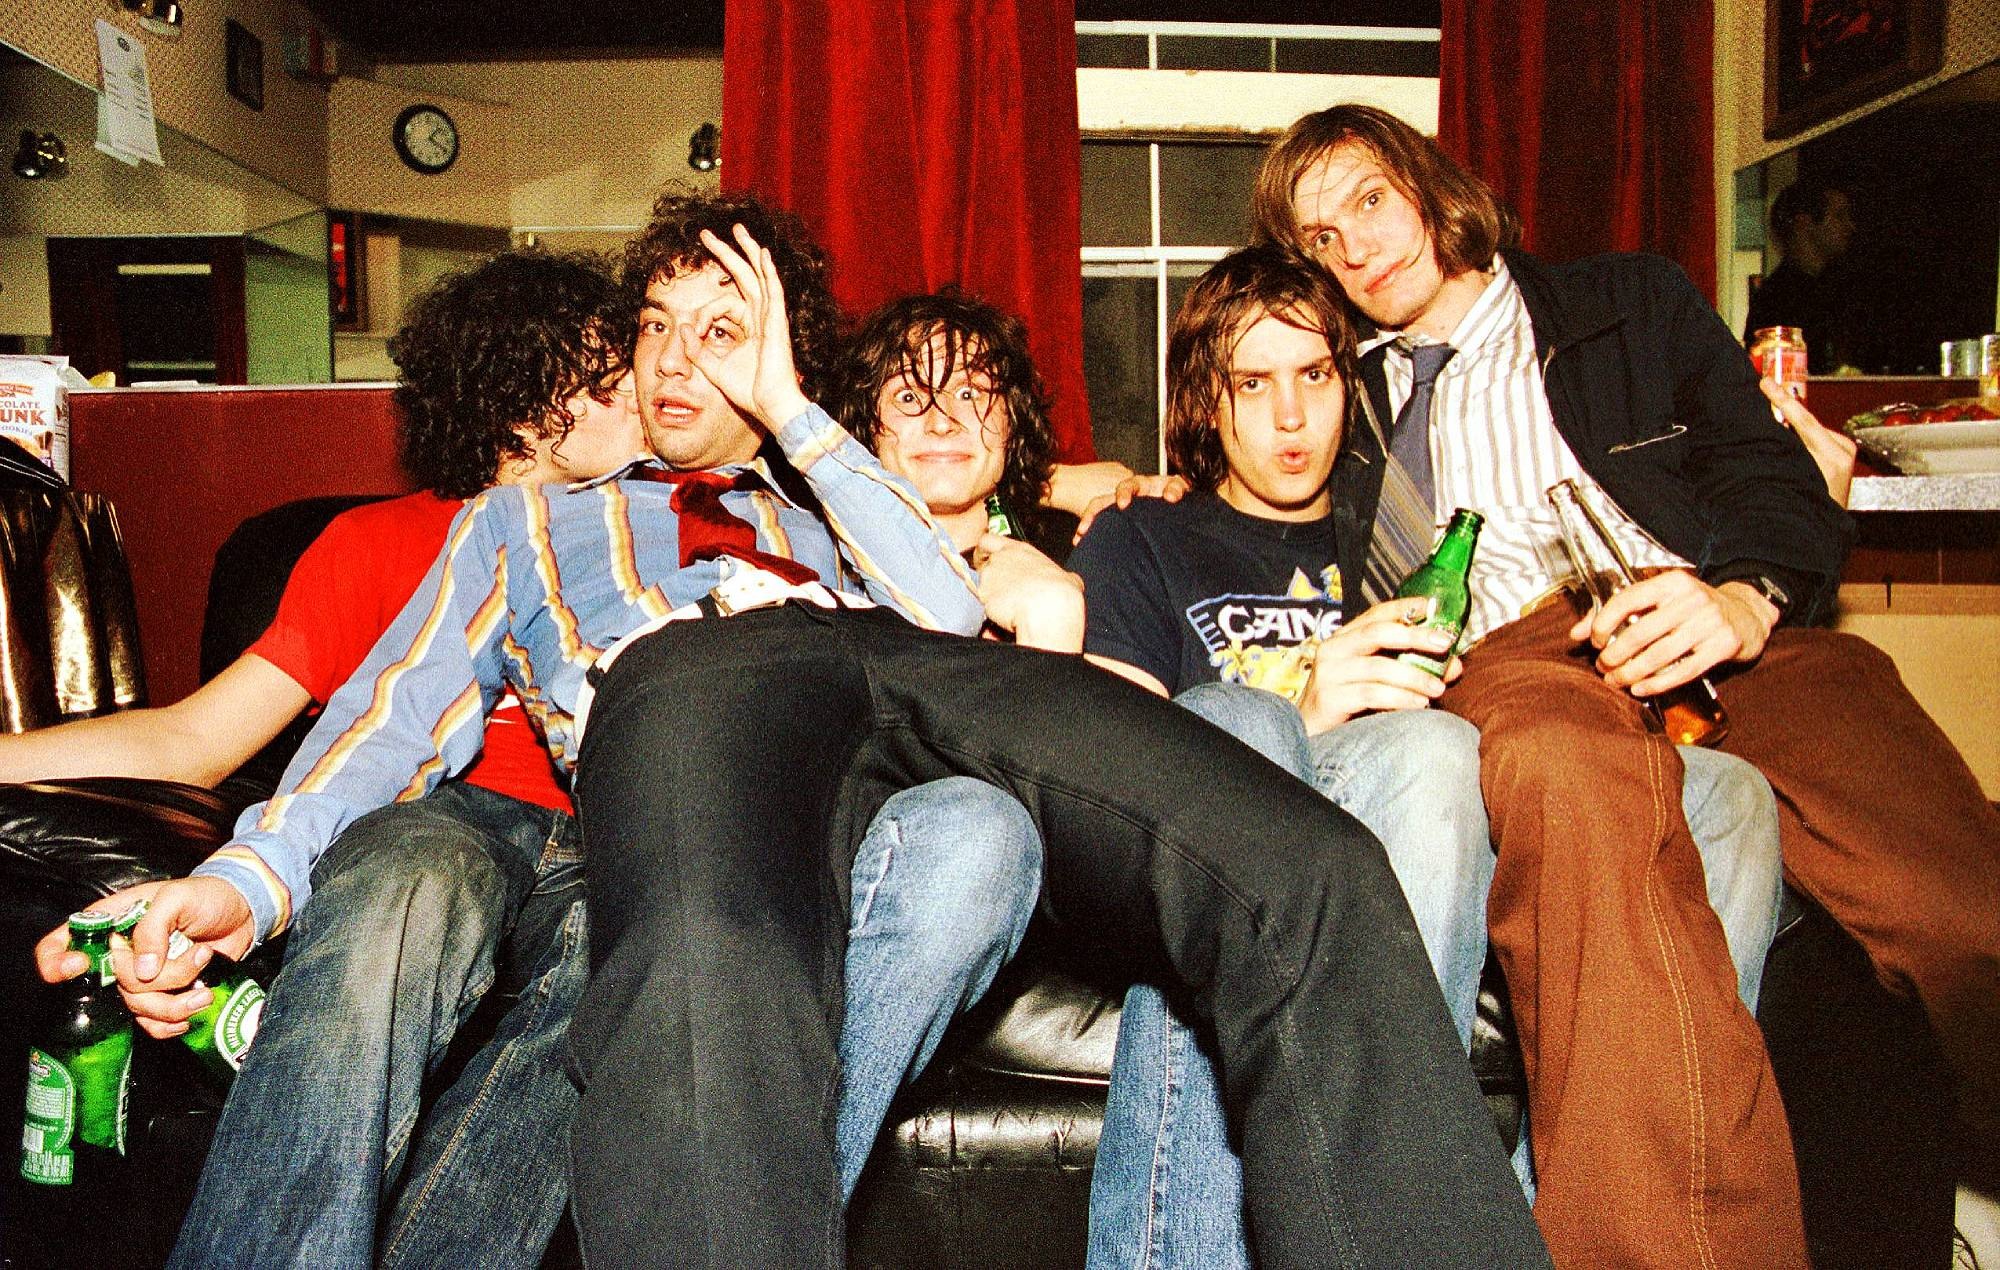 Portrait of The Strokes backstage at The Fillmore, San Francisco, California, USA on 16th October 2001, L-R Fabrizio Moretti, Albert Hammond Jr, Nick Valensi, Julian Casablancas and Nikolai Fraiture. (Photo by Anthony PIdgeon/Redferns)